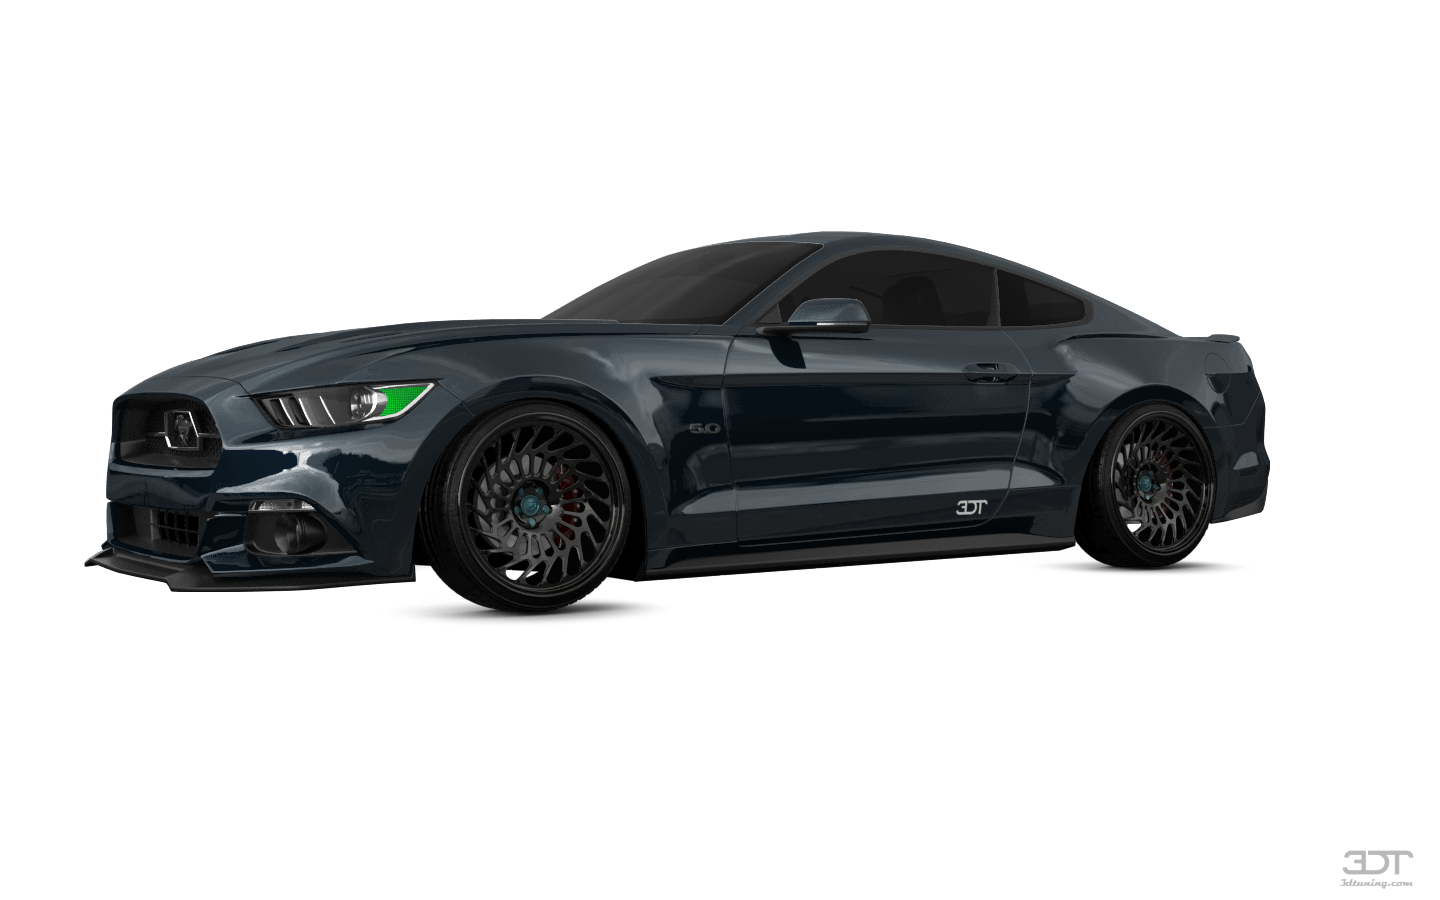 Ford Mustang GT'16